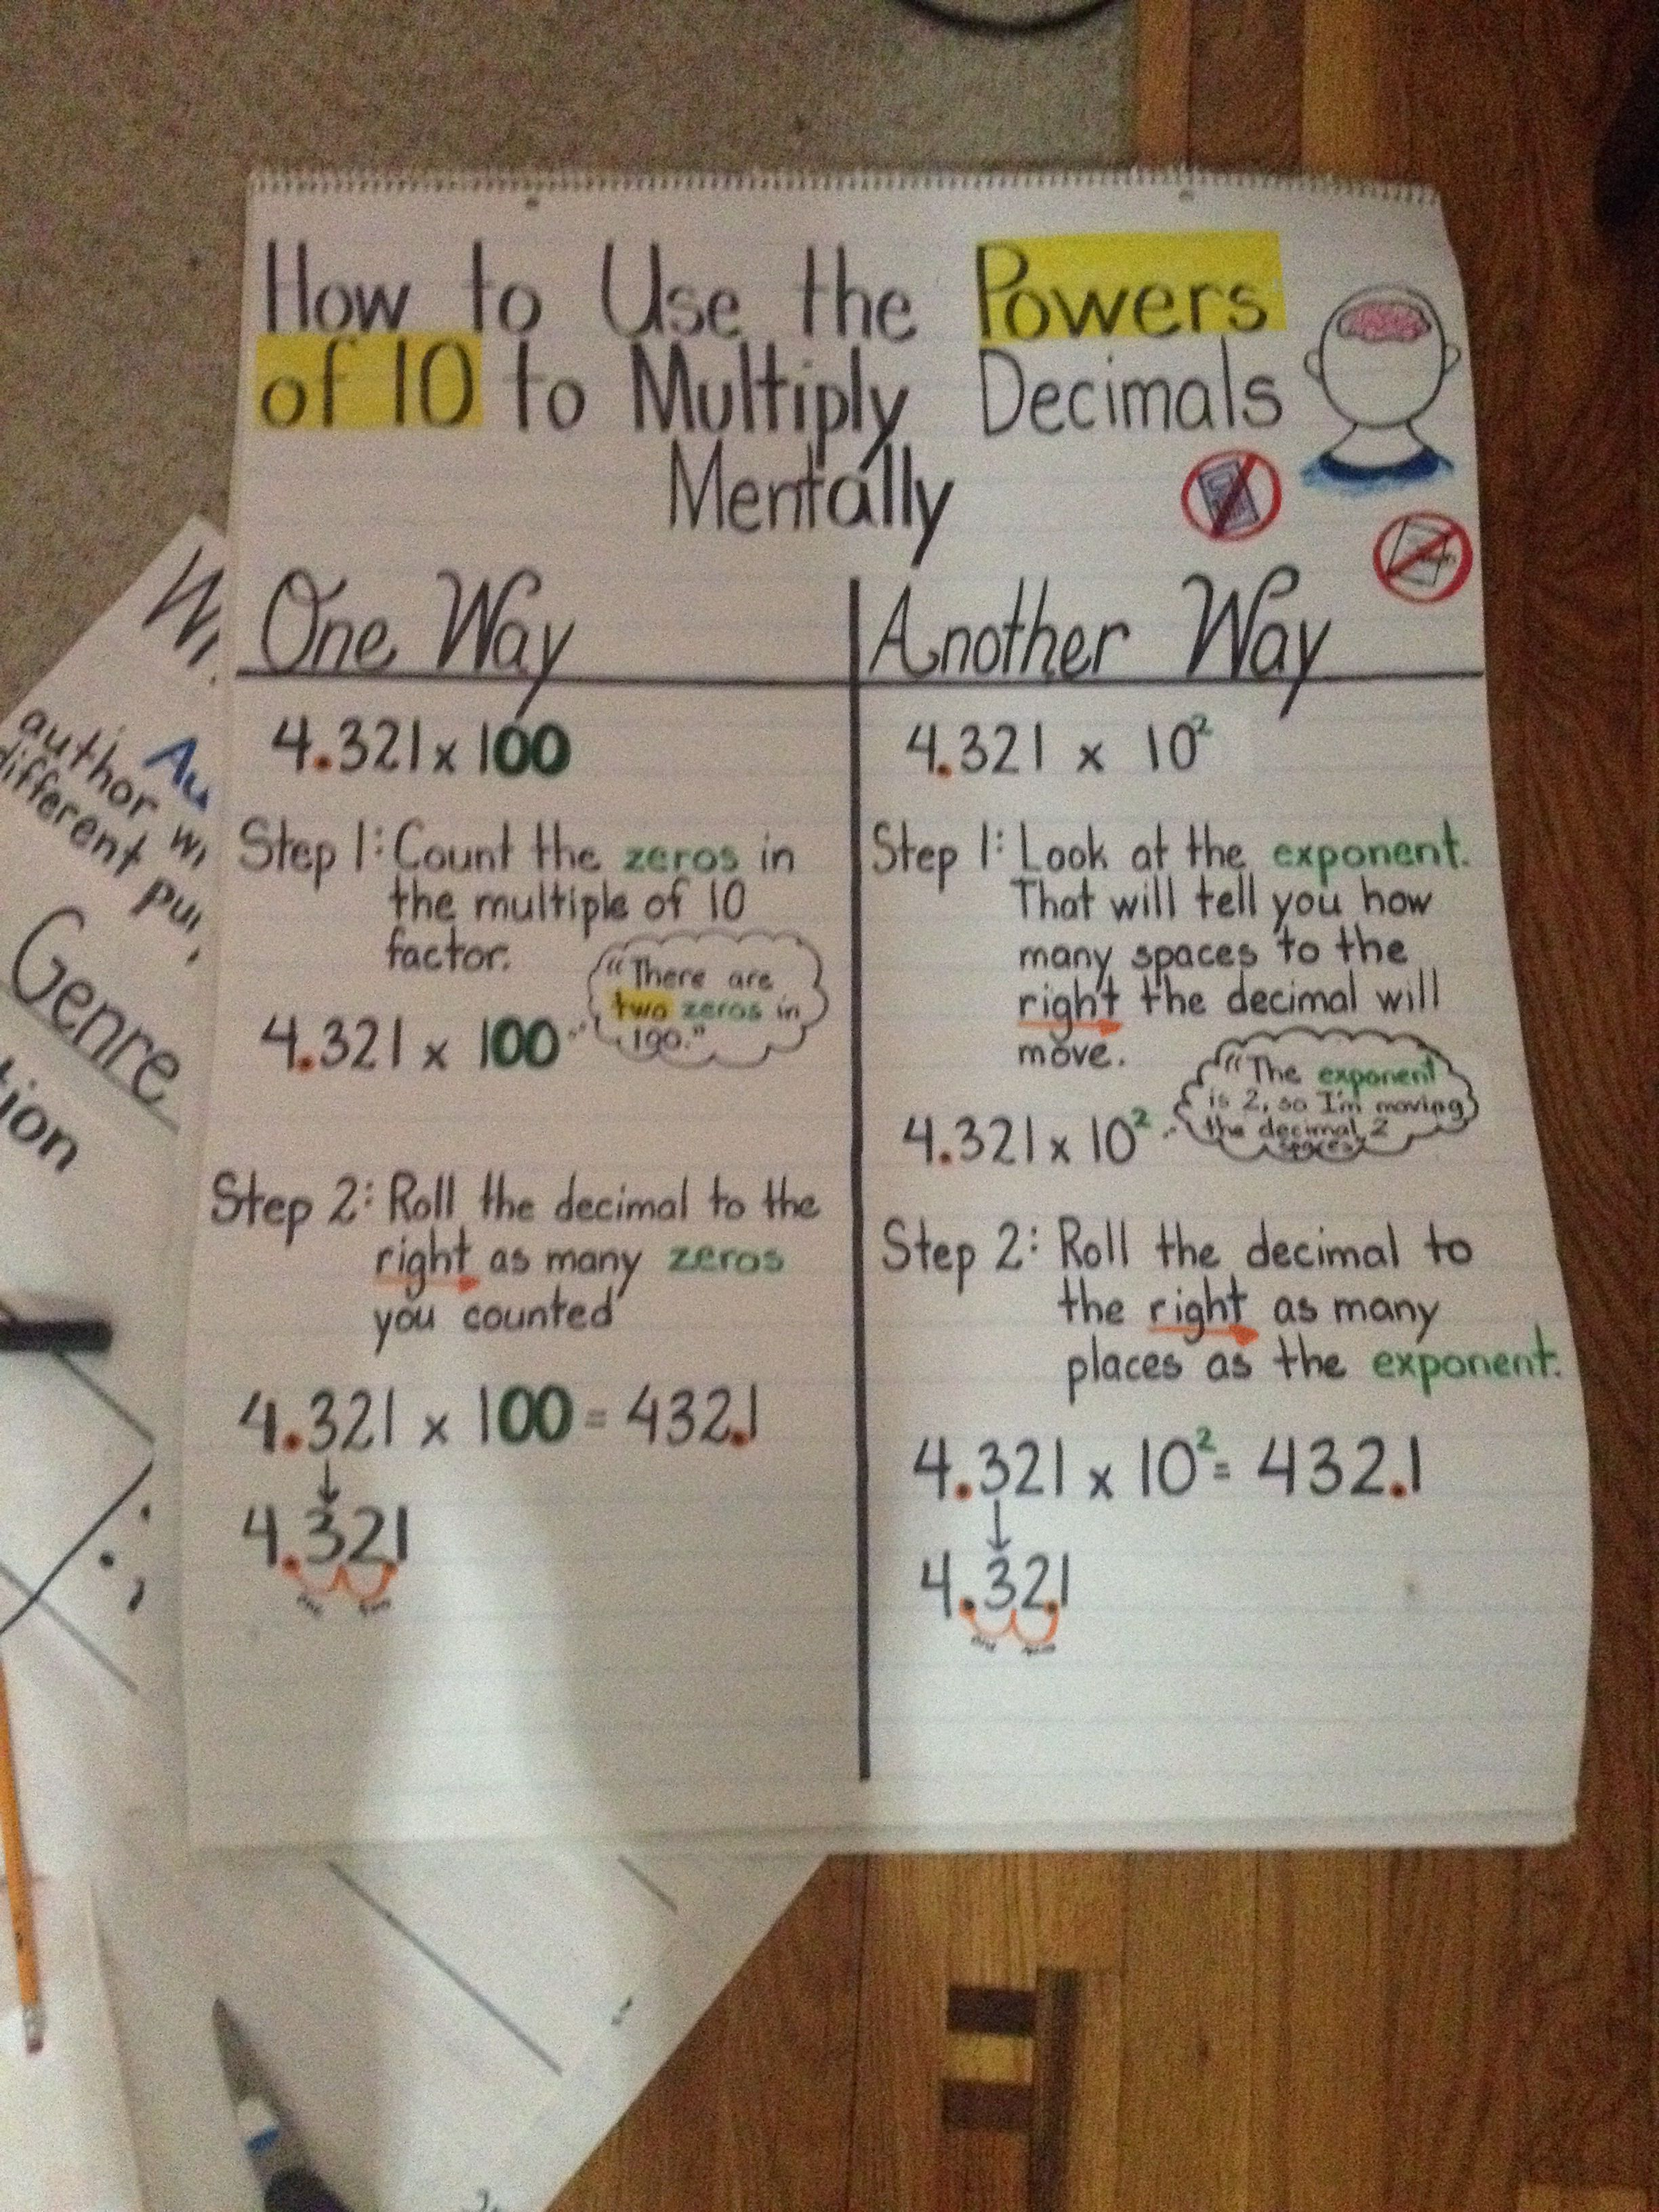 Multiplying Powers Of 10 Mentally Anchor Chart Picture